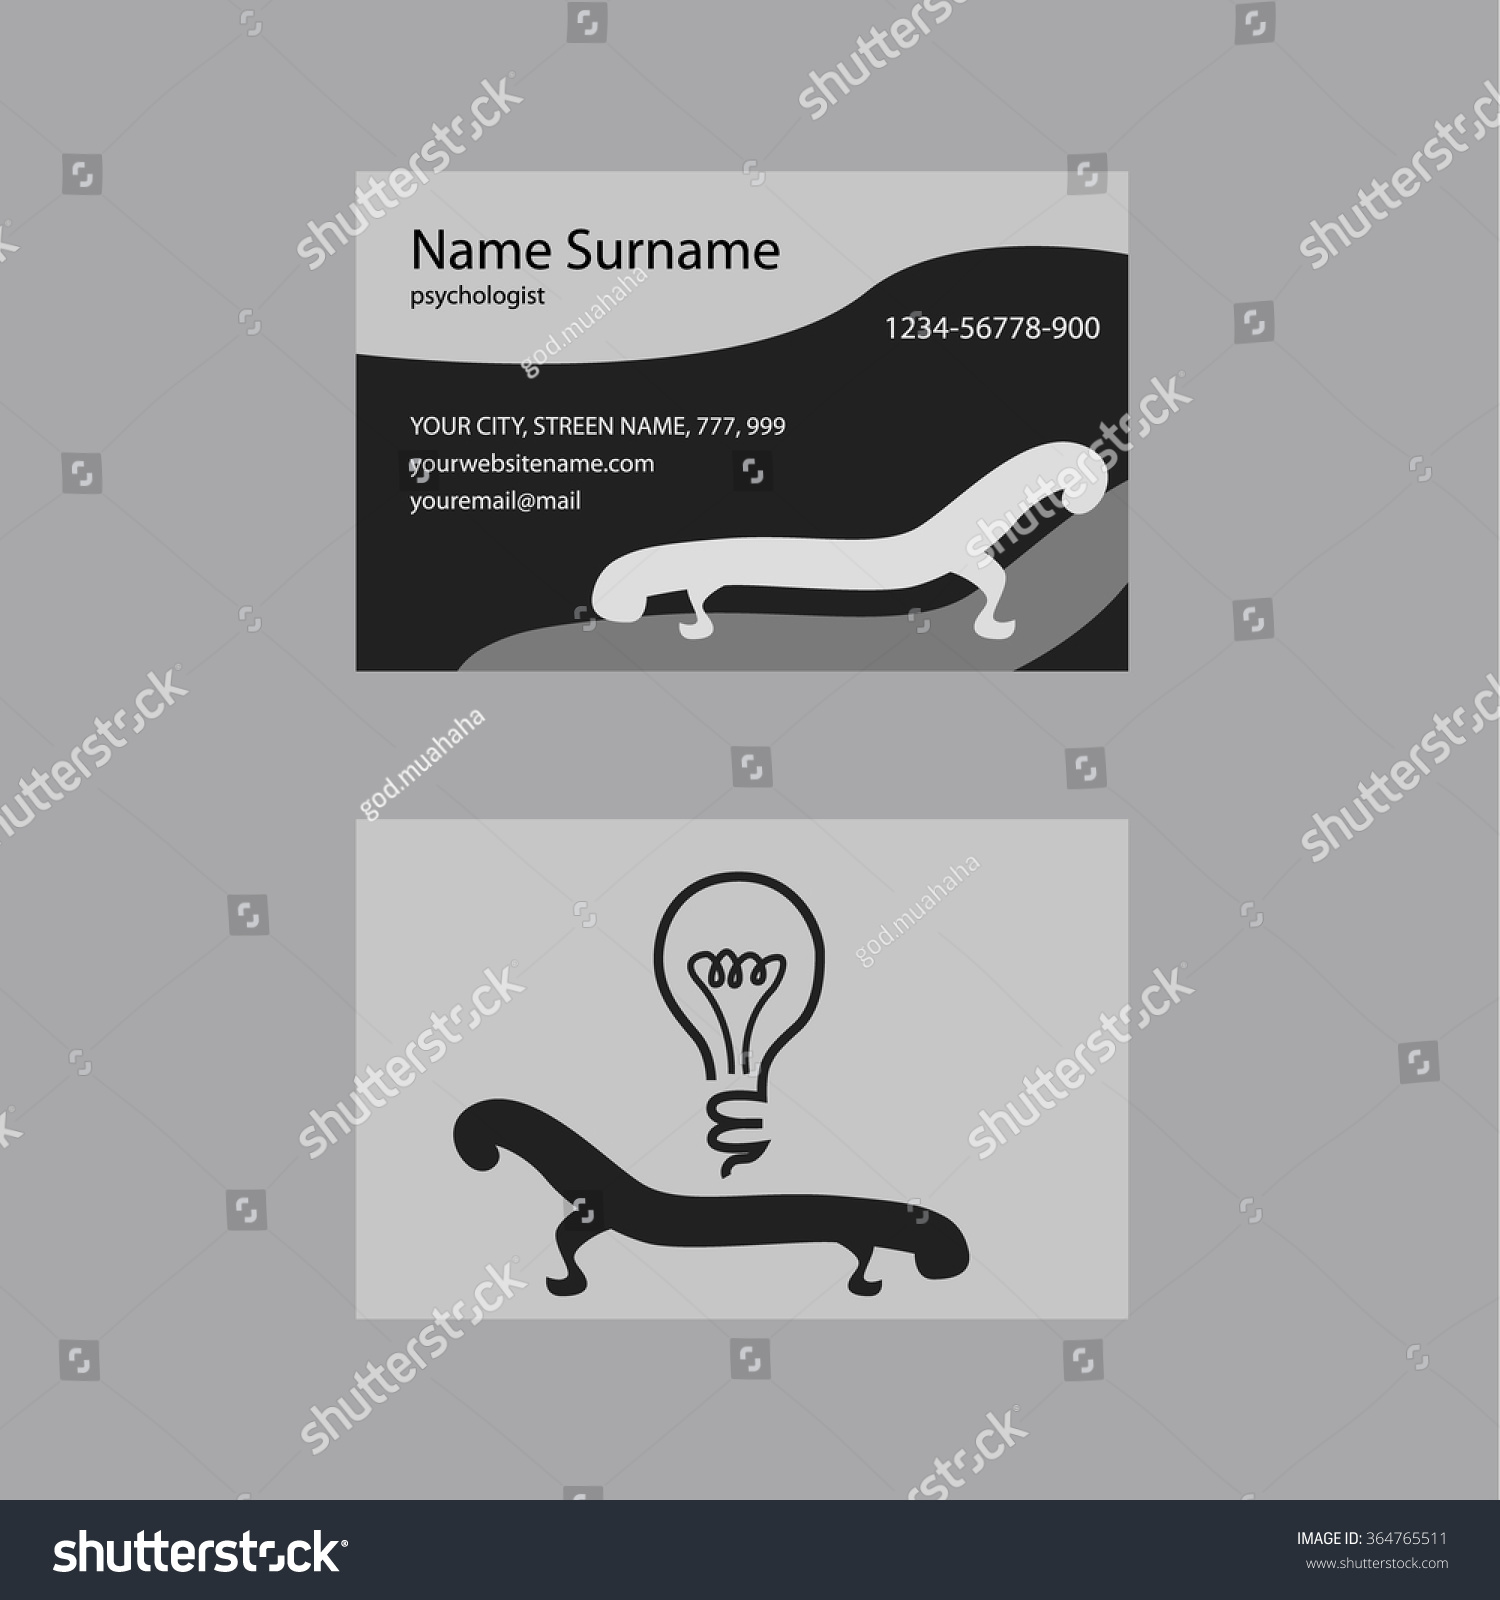 Beautiful Psychiatrist Business Cards Gallery - Business Card ...